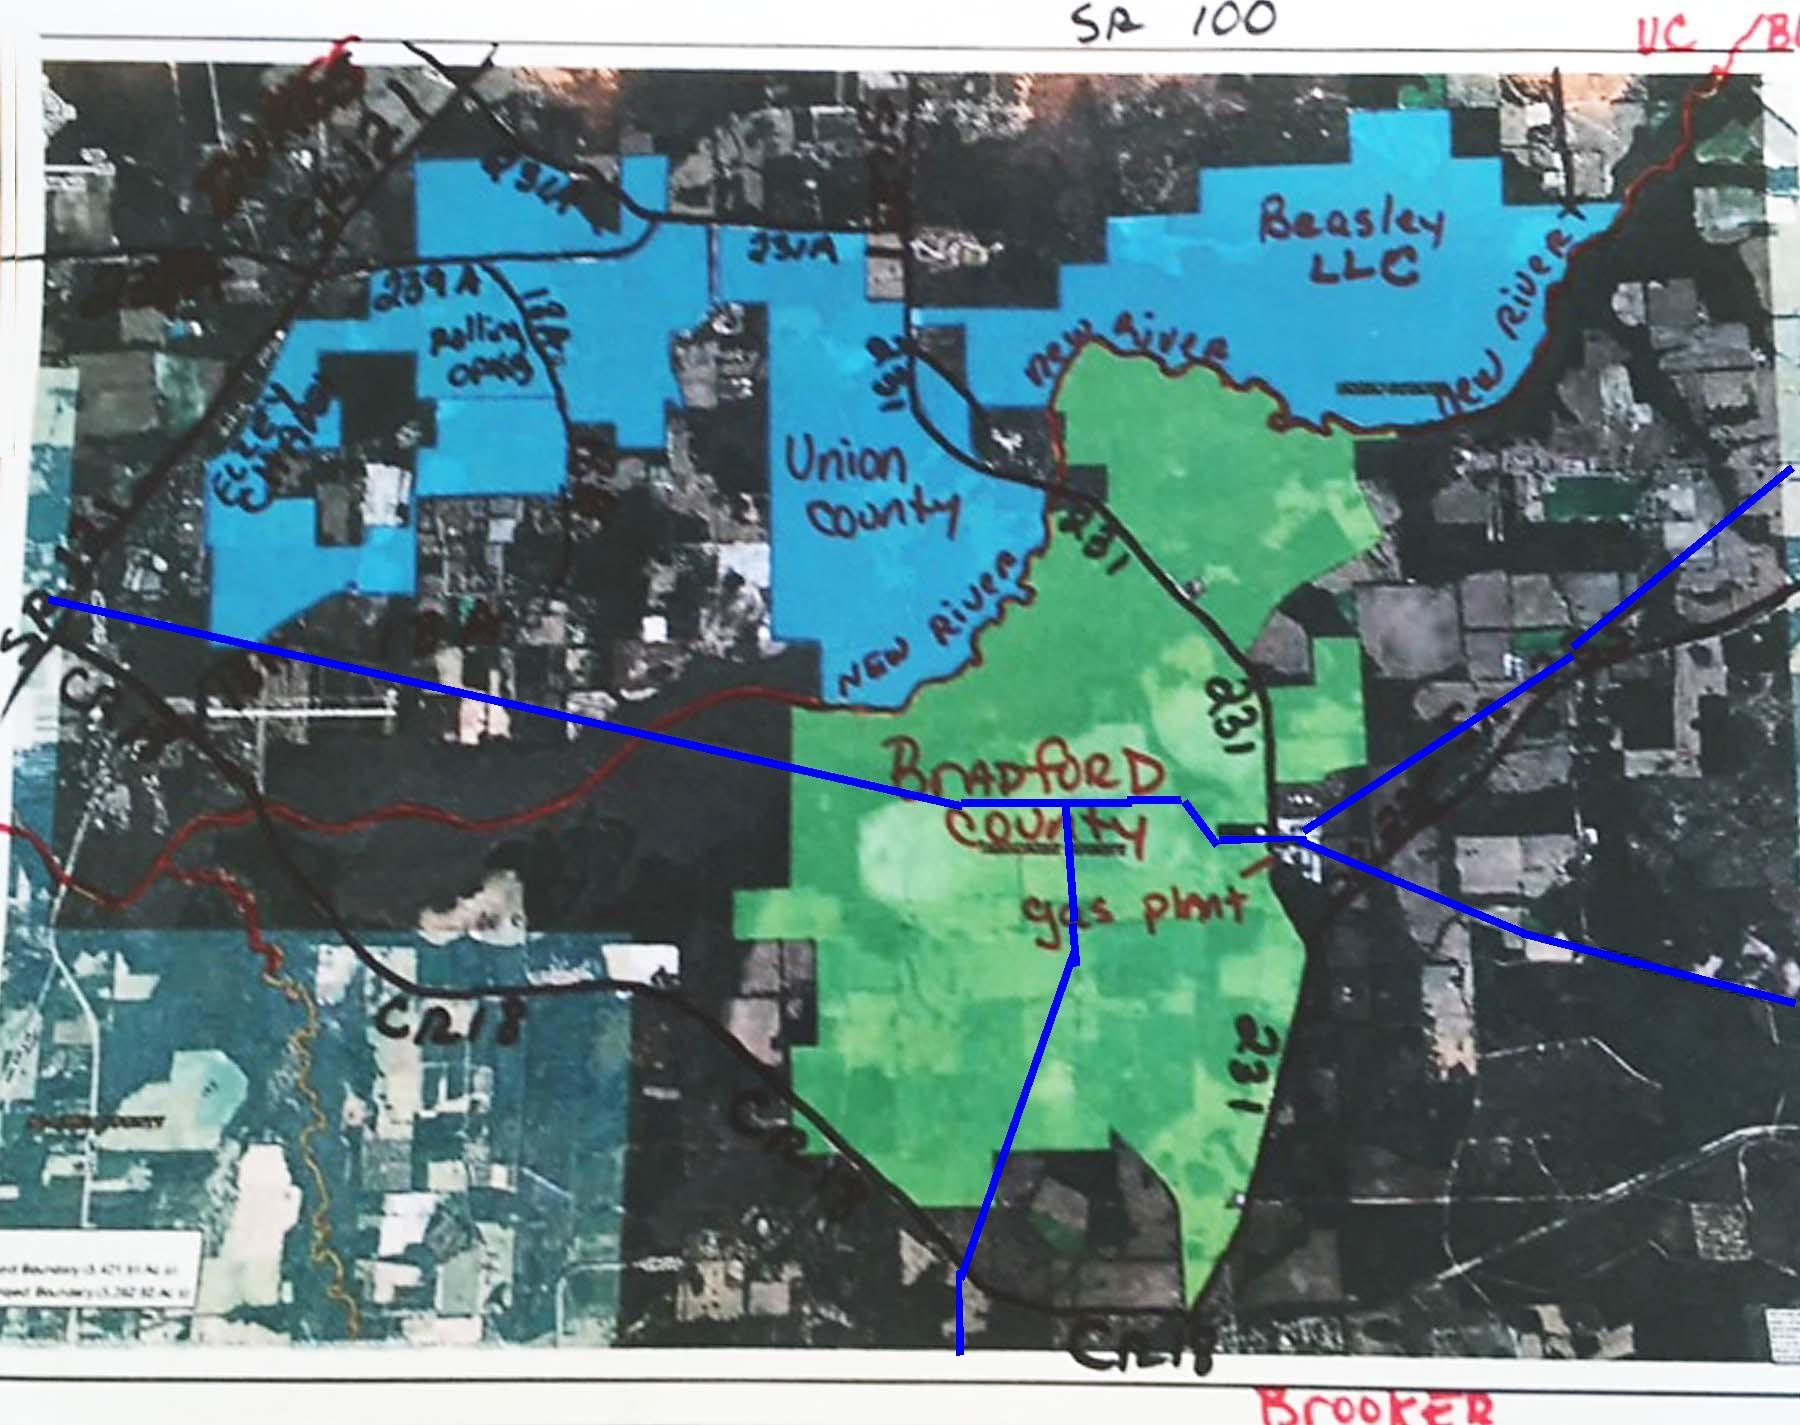 1800x1425 FGT drawn on HPS II annotated map, in FGT natural gas pipeline through HPS II site, by John S. Quarterman, for WWALS.net, 26 August 2017